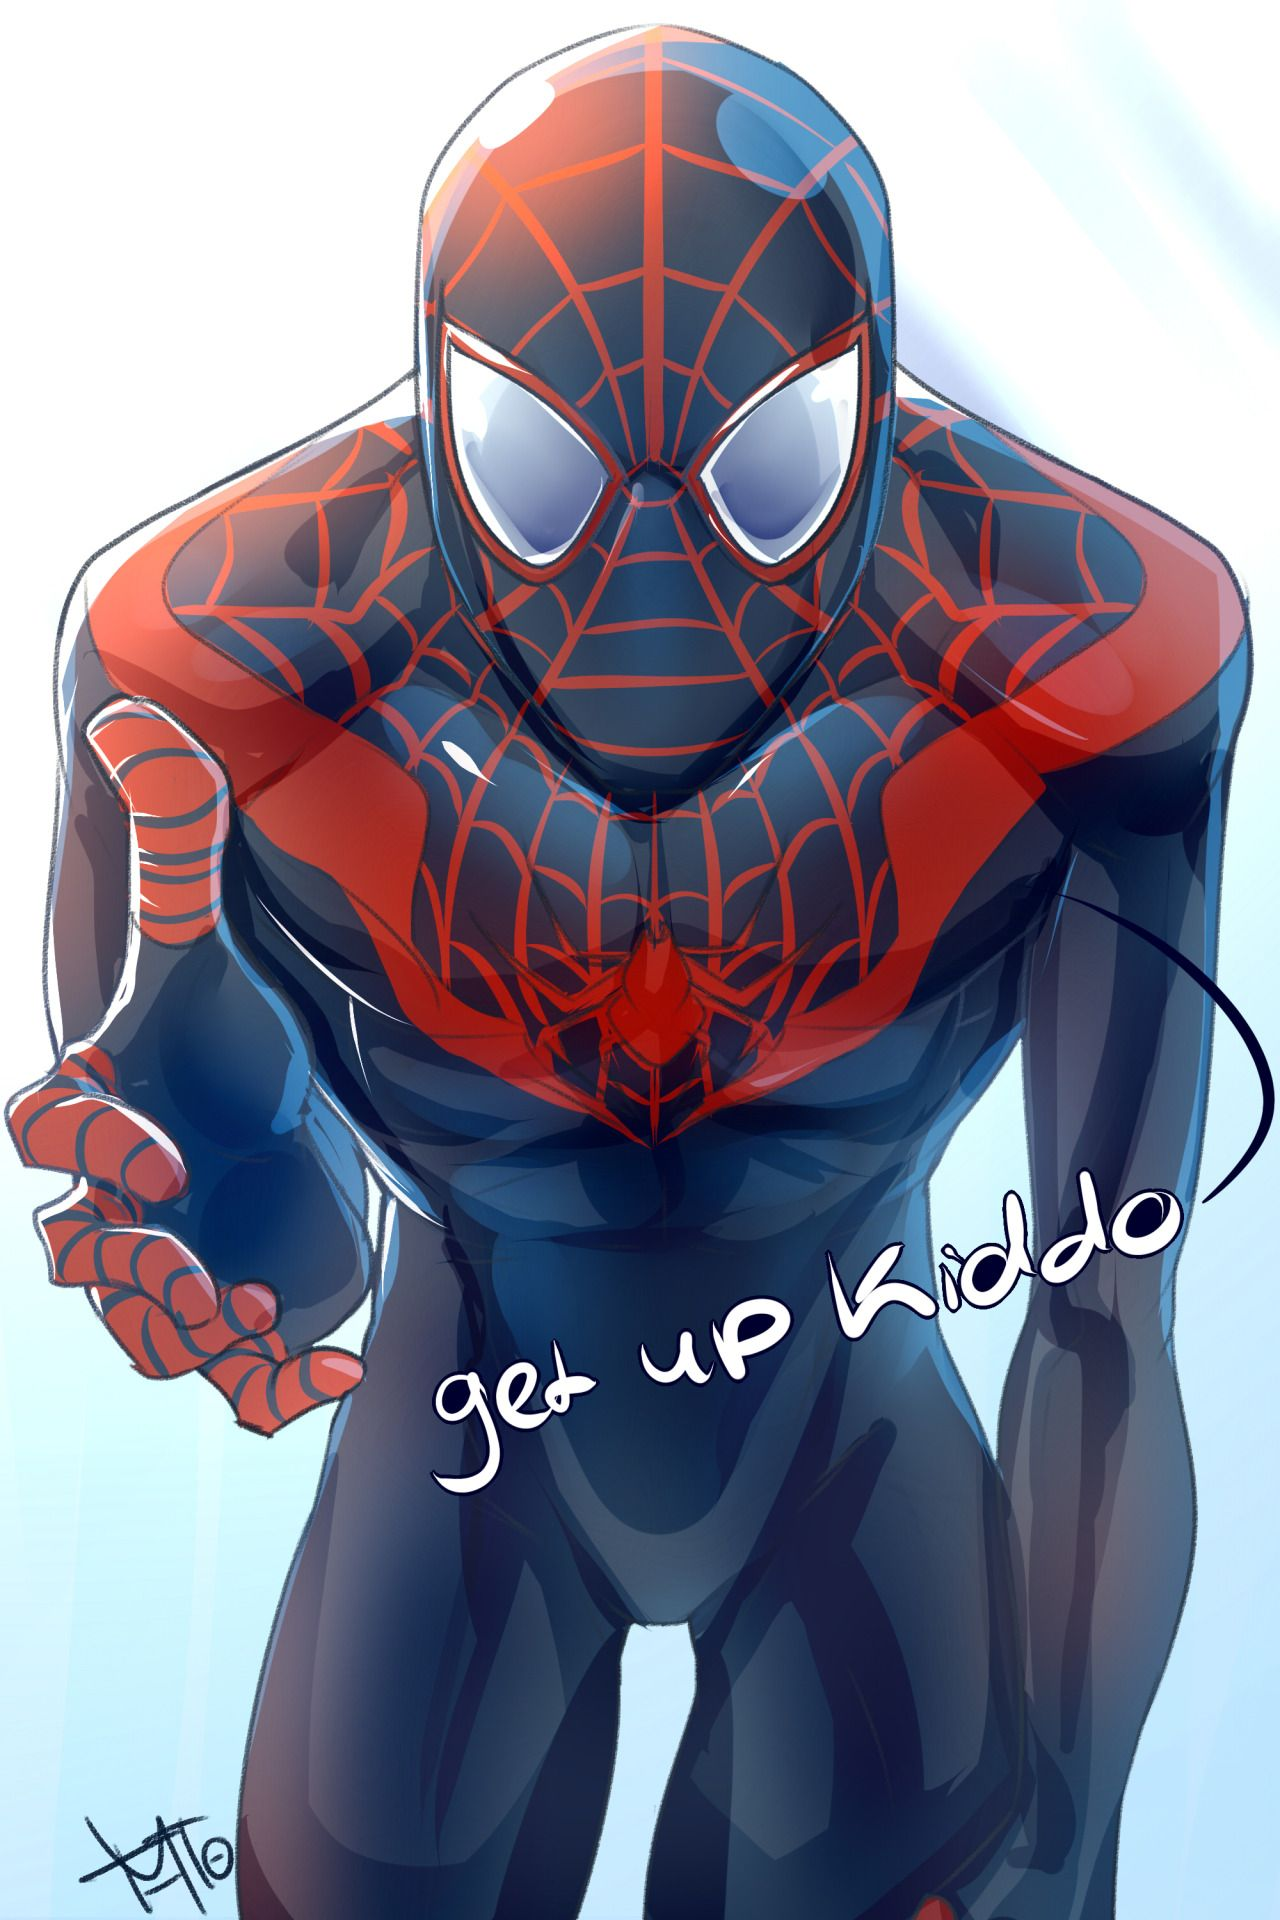 Spiderman Miles Morales Fan Art Get Up Kiddo By Mto The 5 Star Award Of Aw Yea Marvel Spiderman Ultimate Spiderman Marvel Comic Character